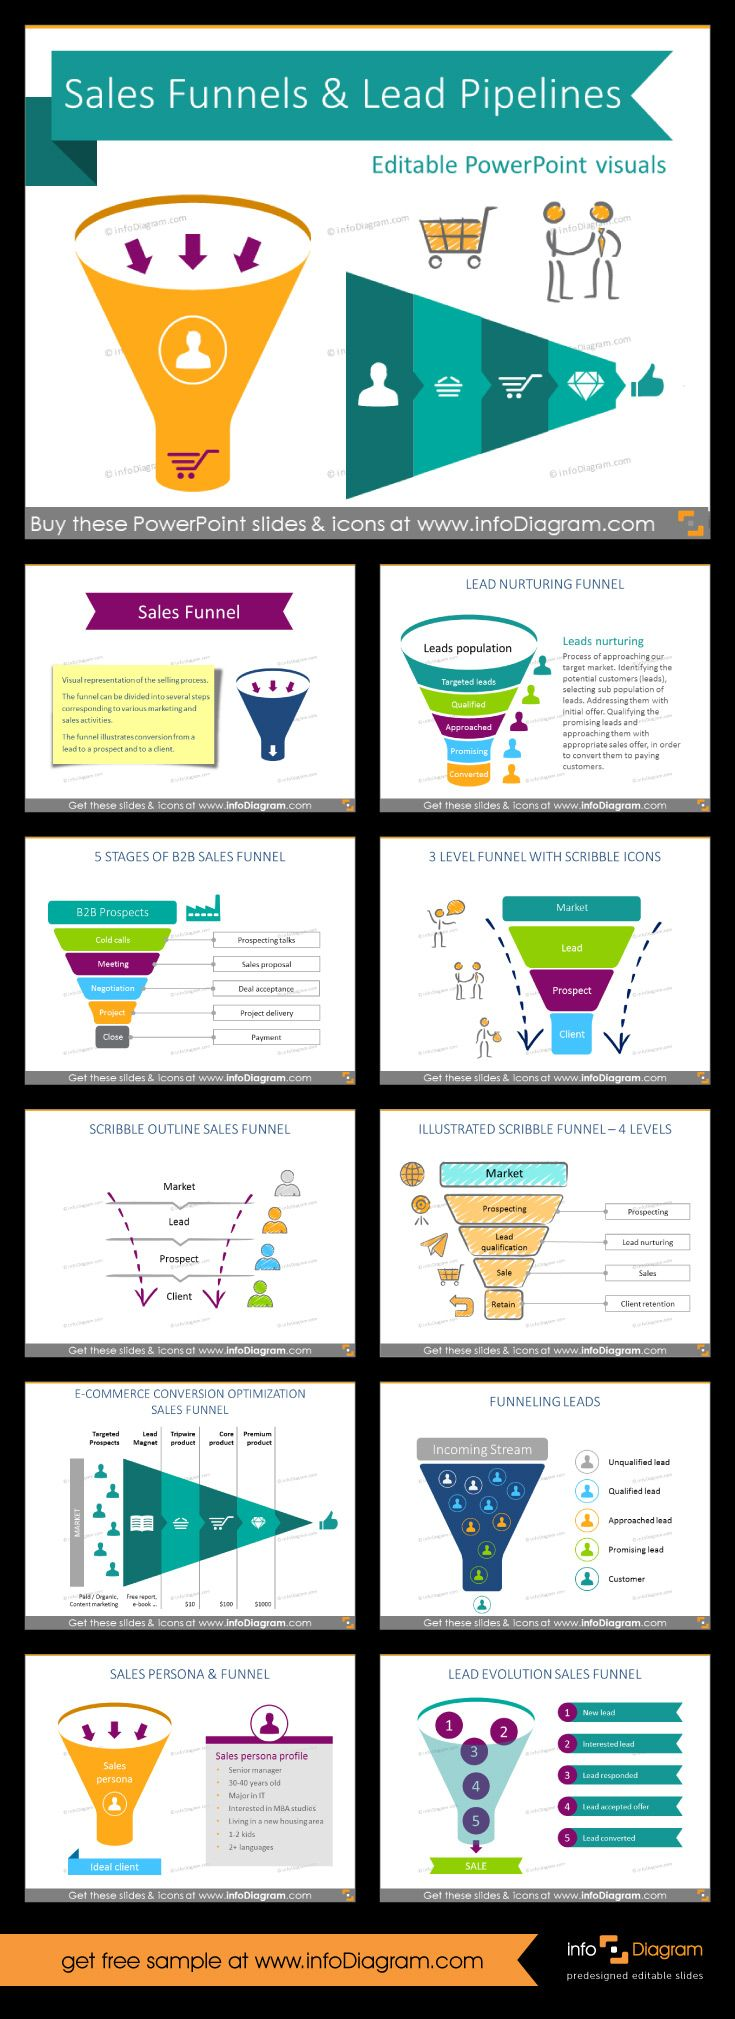 Sales Funnel Diagrams and Pipeline Process Charts Collection of sales funnel diagrams pre-designed for Powerpoint slides. Template with various marketing and sales funnel process diagrams steps of sales funnel lead to client conversion pipelne selling pip